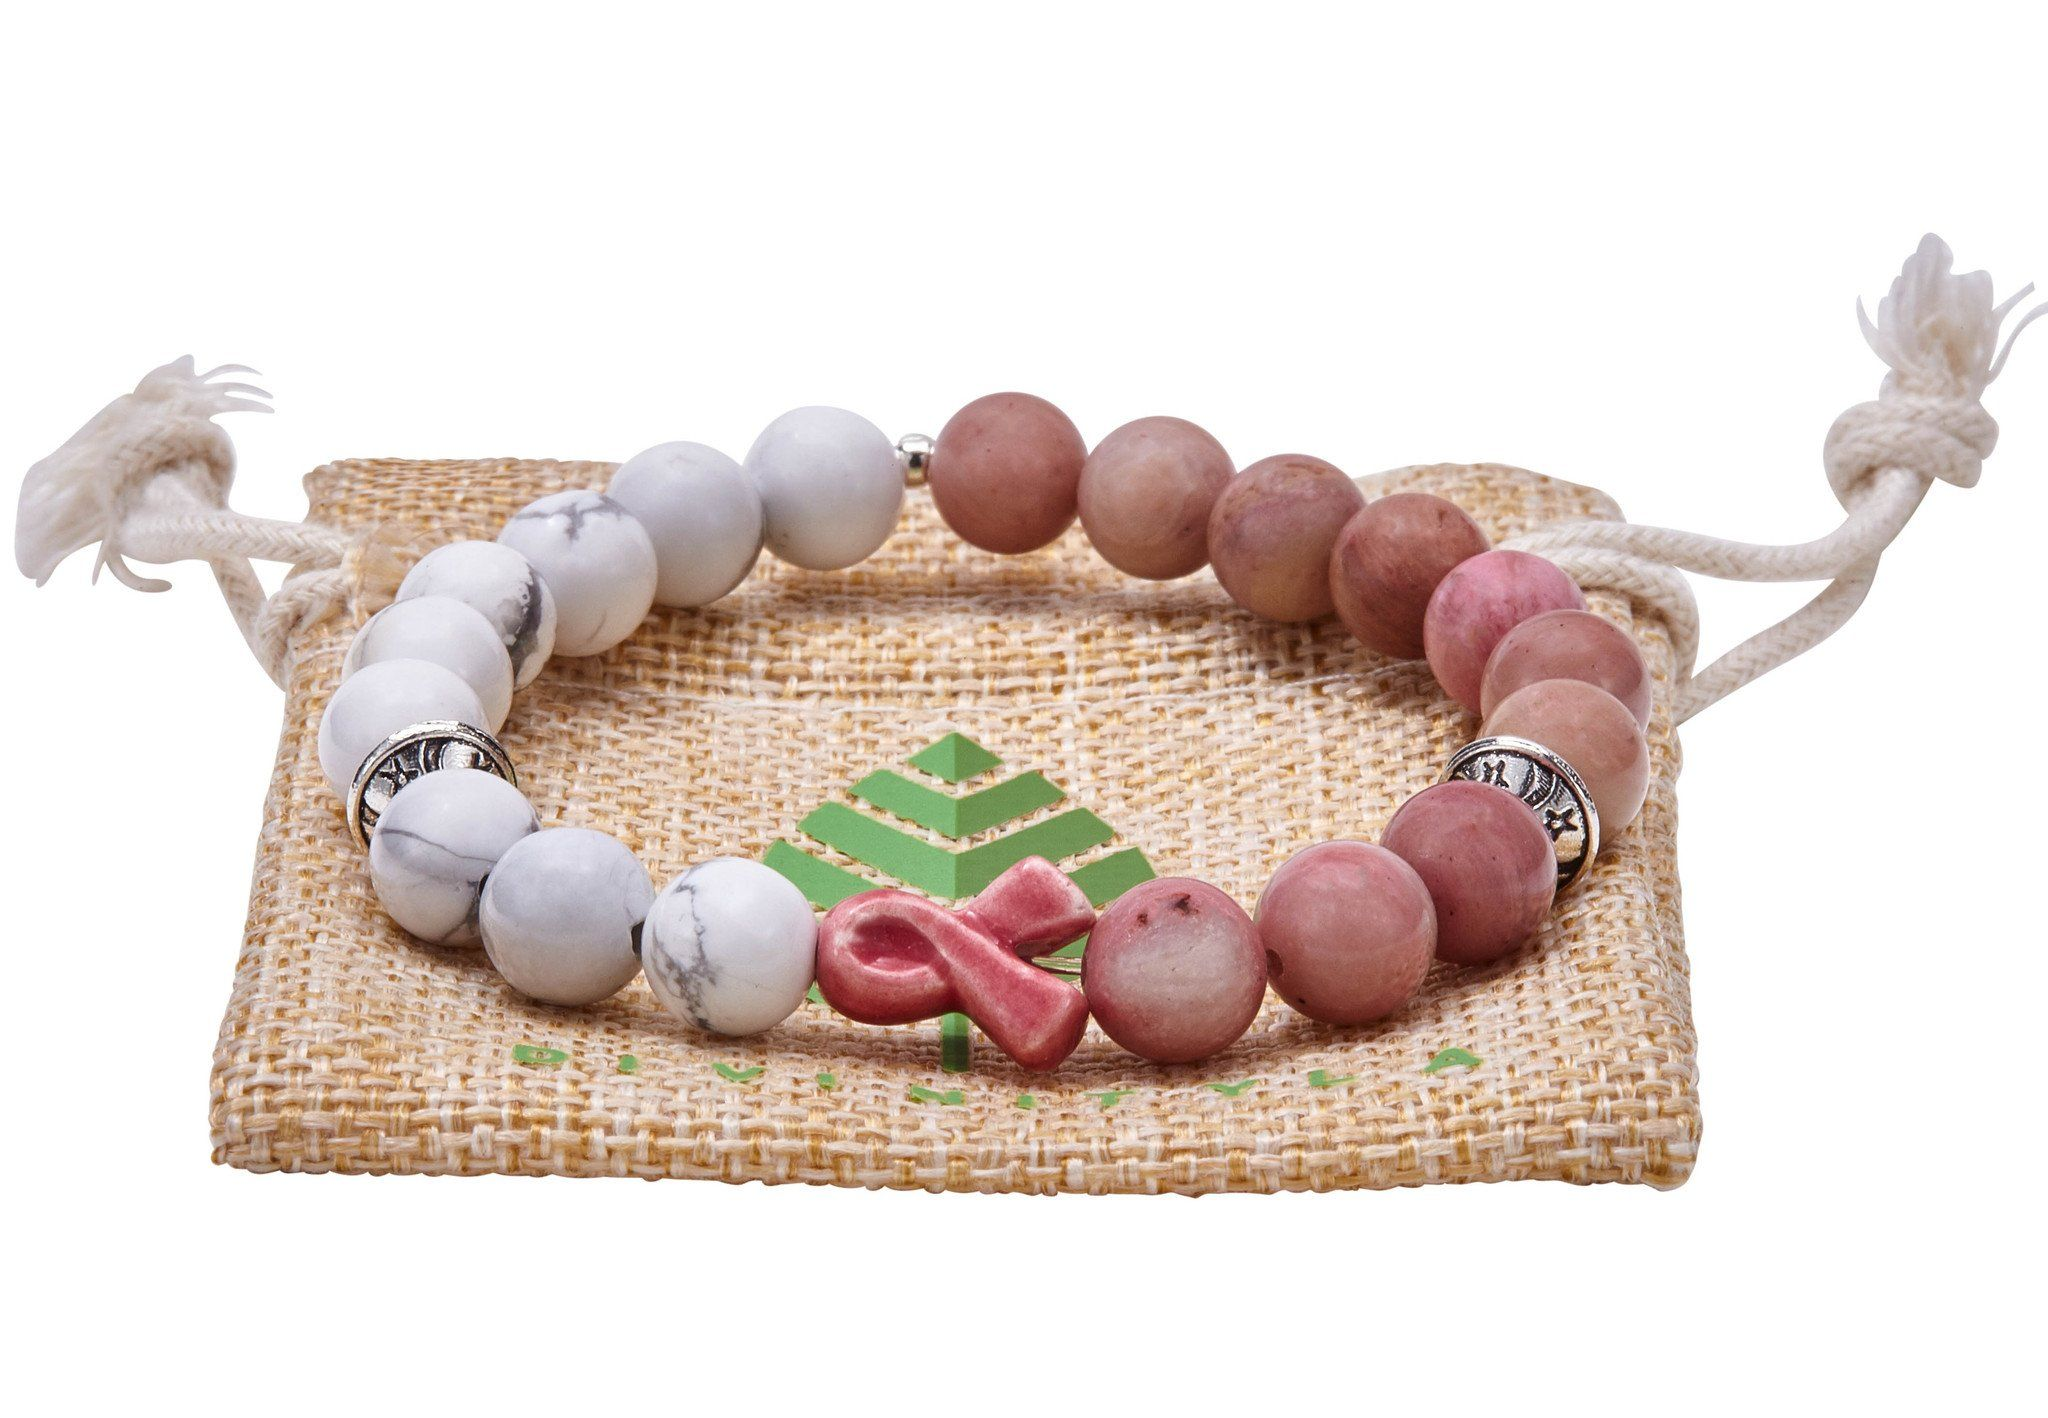 Breast Cancer - Howlite - Rhodonite Celebrating October as Breast Cancer Awareness Month! A most meaningful accessory showing unconditional support for all those whose lives have been touched by breast cancer. This bracelet opens the heart to an abundance of love and healing while encouraging compassion for all aspects of life. Its stones possess tangible calming effects that are known to decrease stress and anxiety. 10% of our profits from this bracelet will be donated to Relay for Life